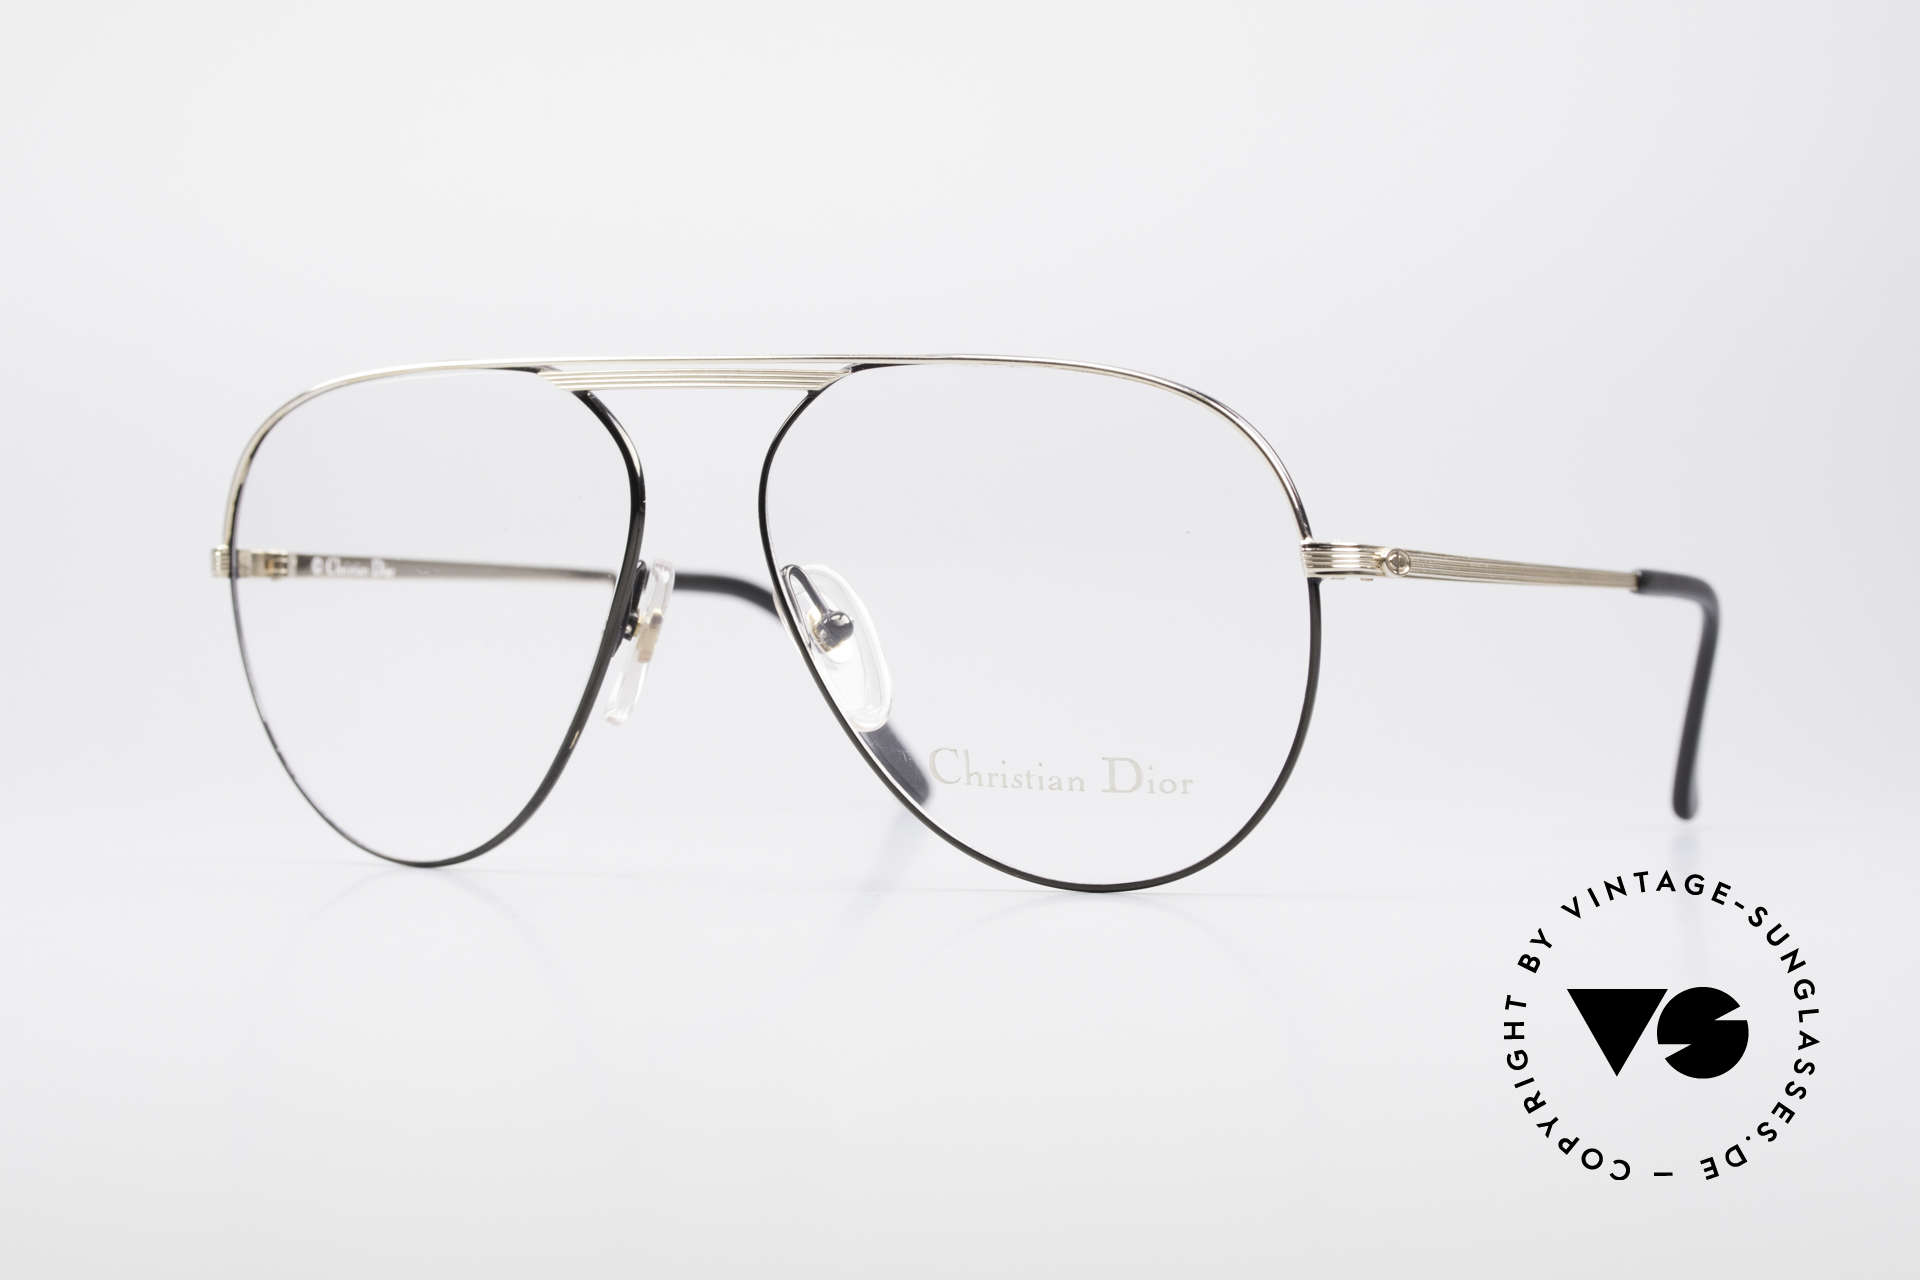 Christian Dior 2536 Vintage Aviator Glasses Men, awesome aviator eyeglasses by Christian Dior, Made for Men